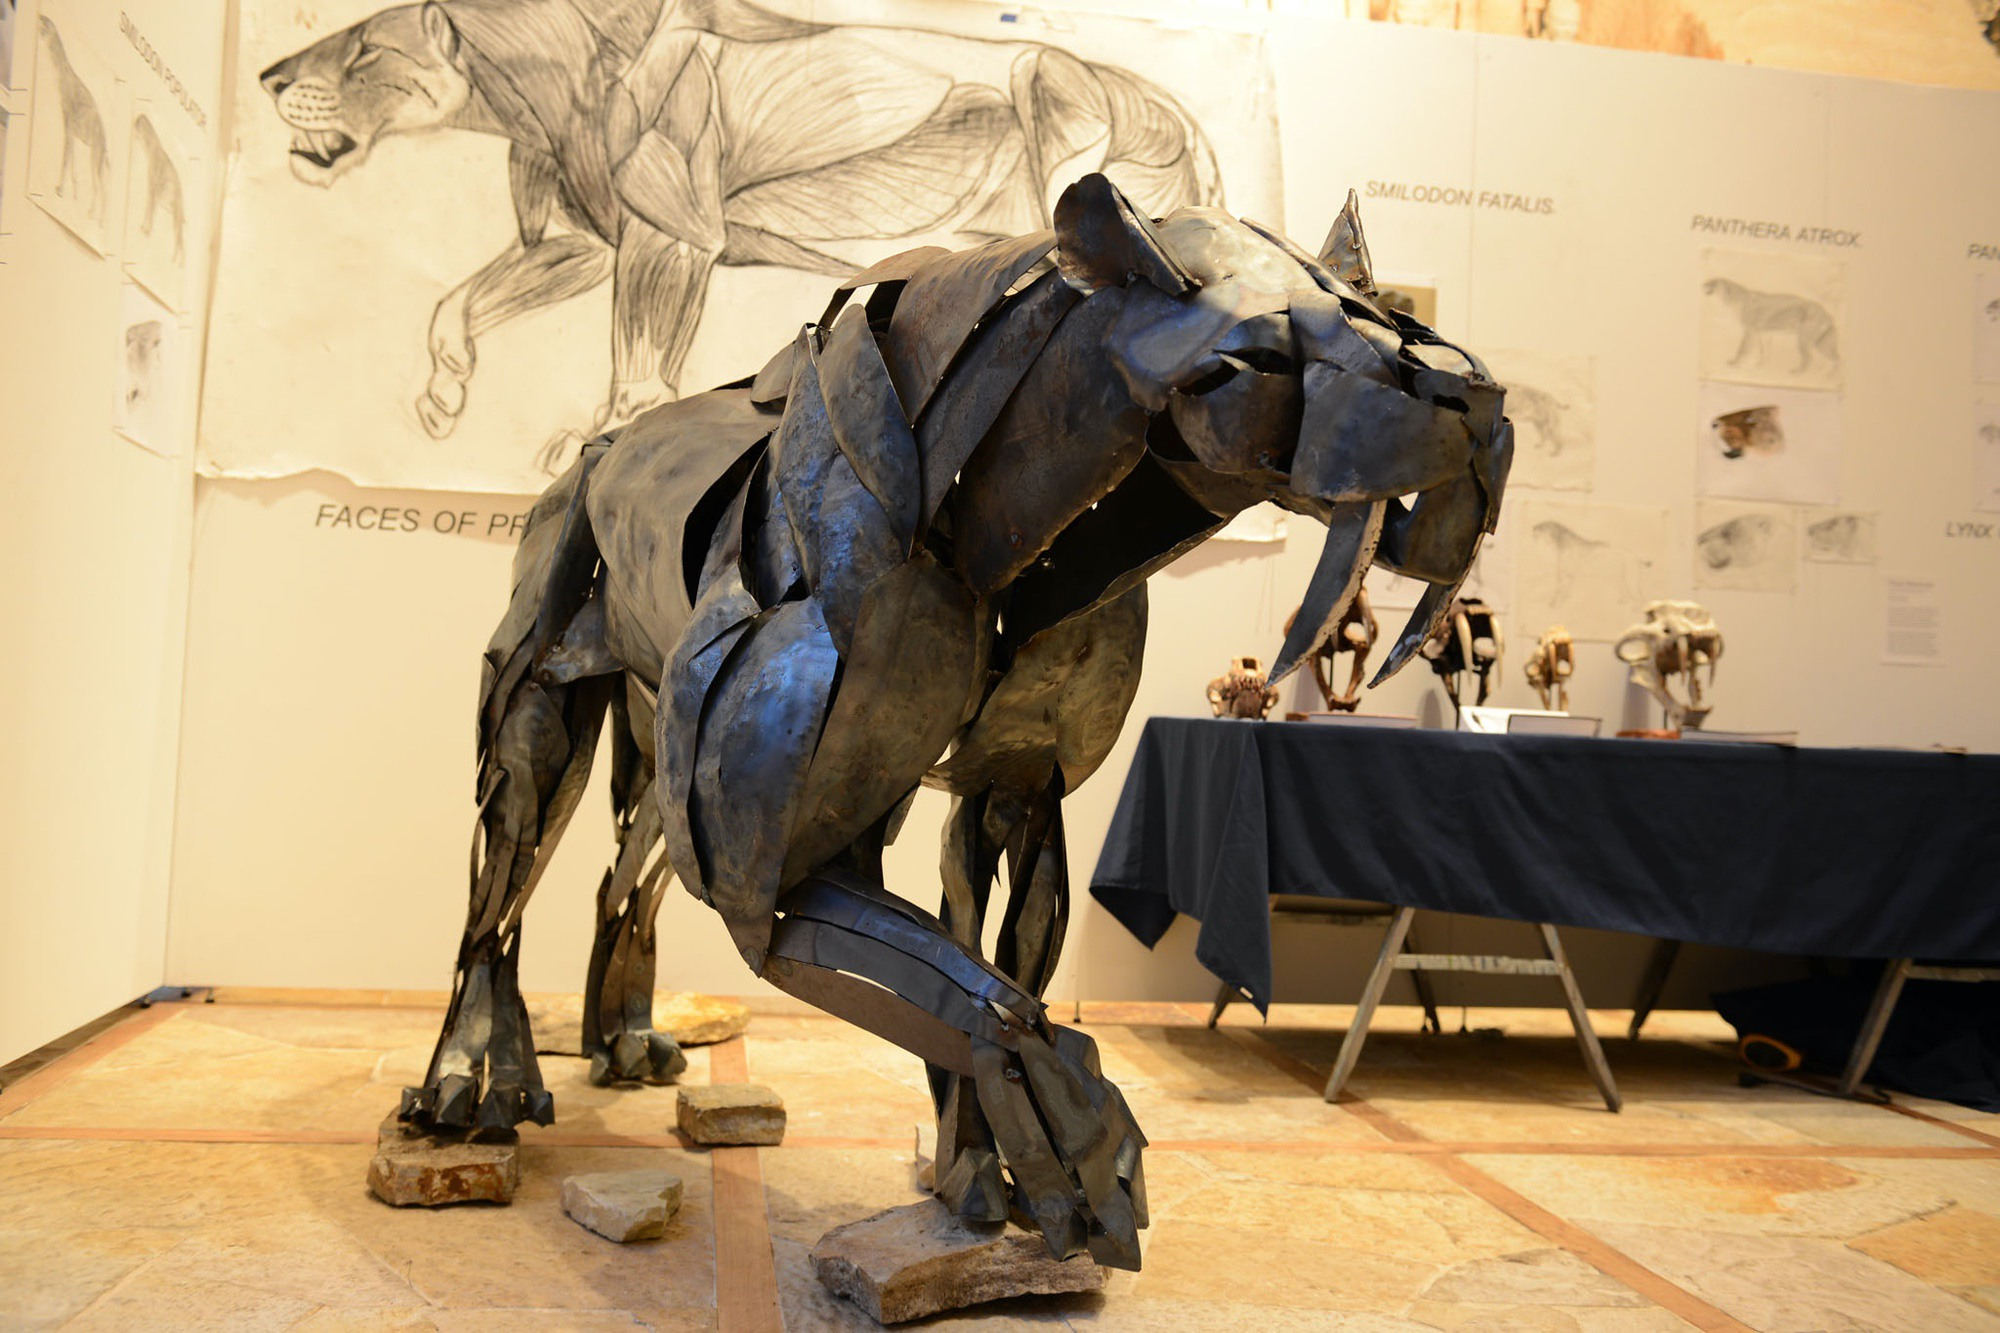 Steel sculpture showing the muscle anatomy of a giant saber-toothed cat, Smilodon Populator, by Serge Merjeevski '13